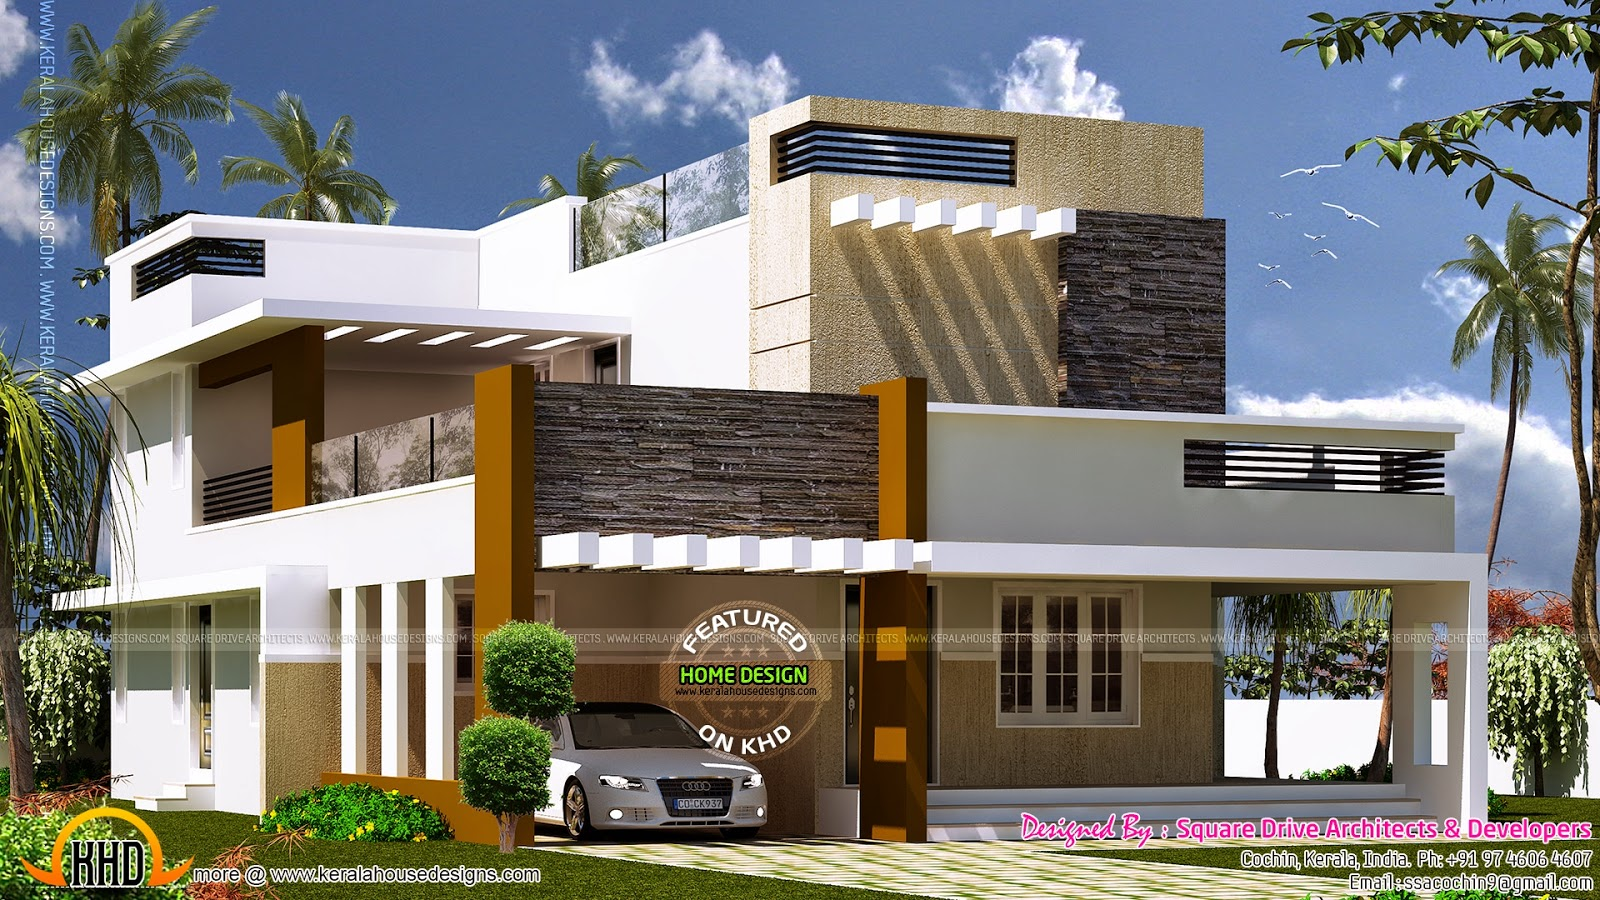 Design of contemporary villa kerala home design and floor plans